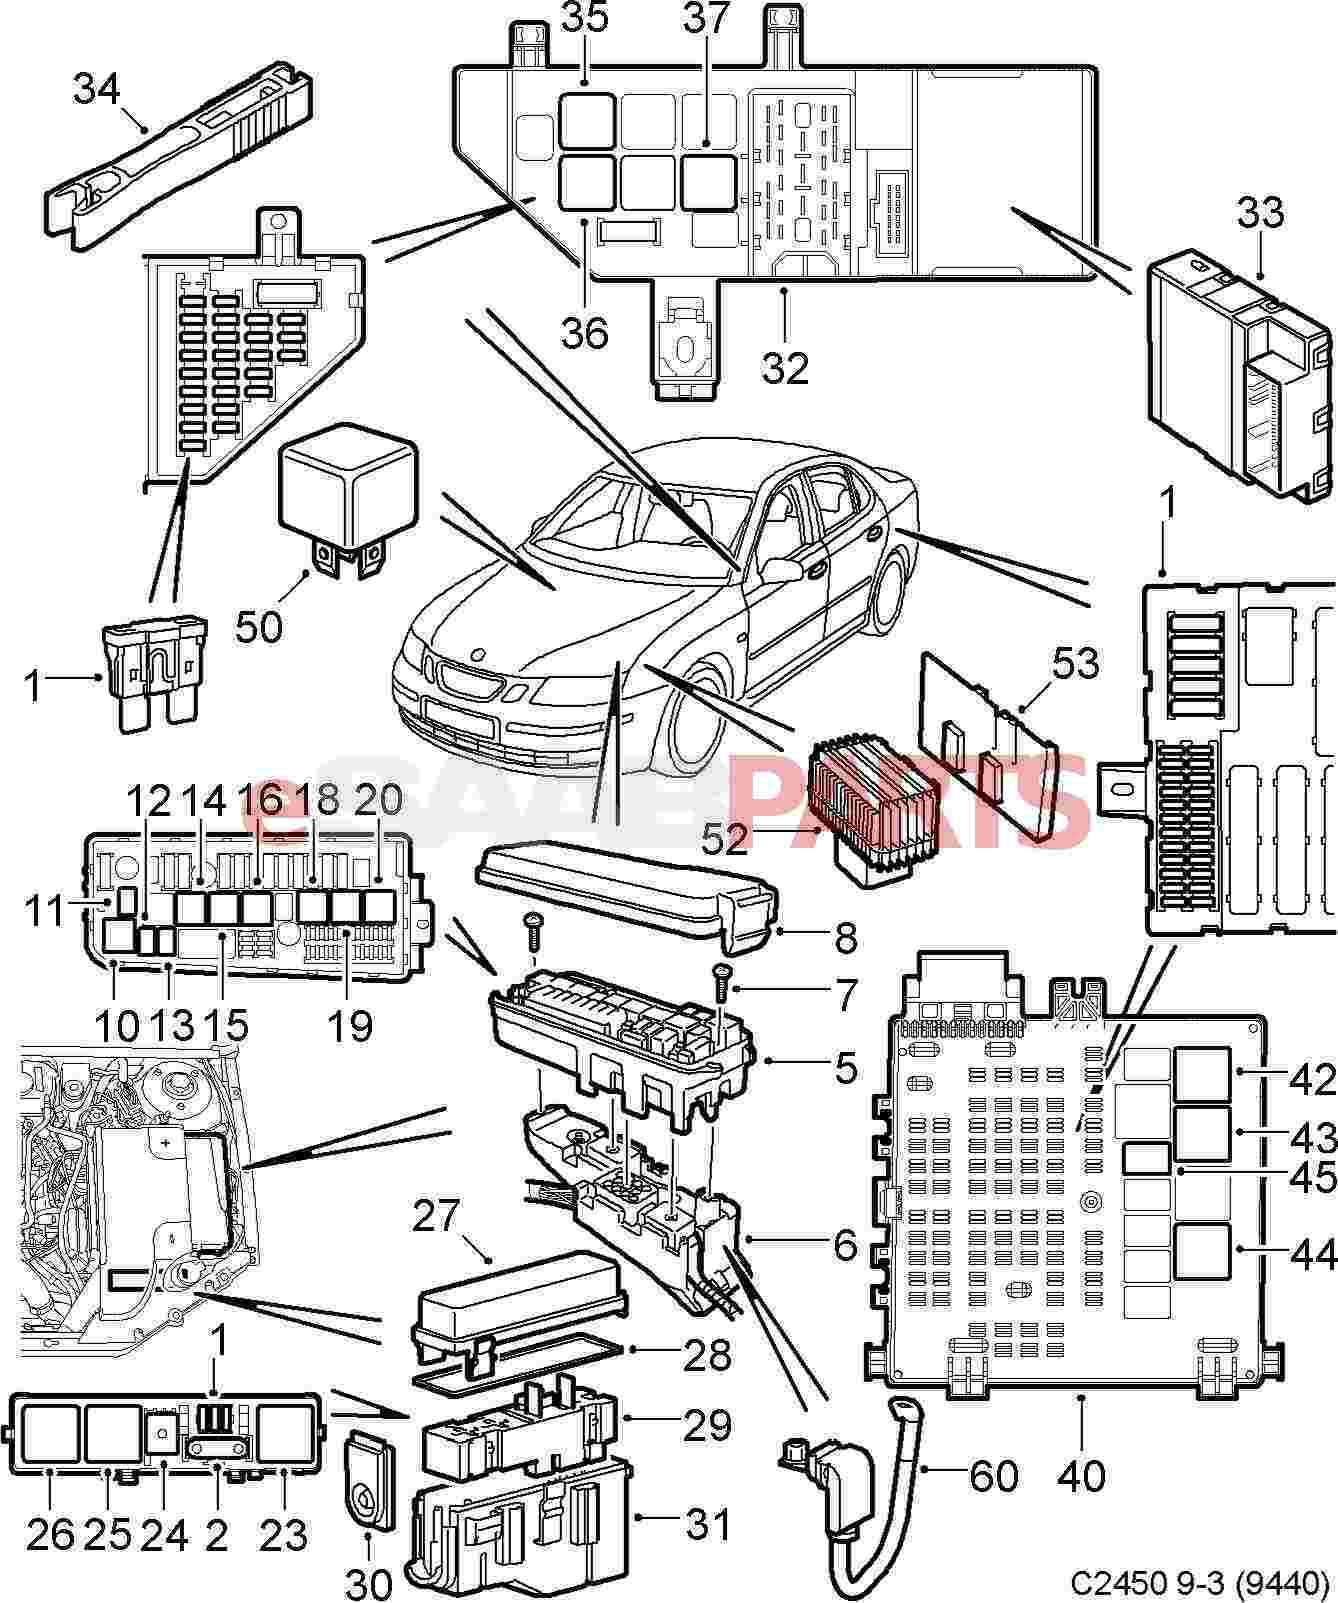 2004 saab 9 3 headlight wiring diagram enthusiast wiring diagrams u2022 rh  rasalibre co 2007 saab 9-3 headlight fuse 2005 saab 9-3 headlight fuse